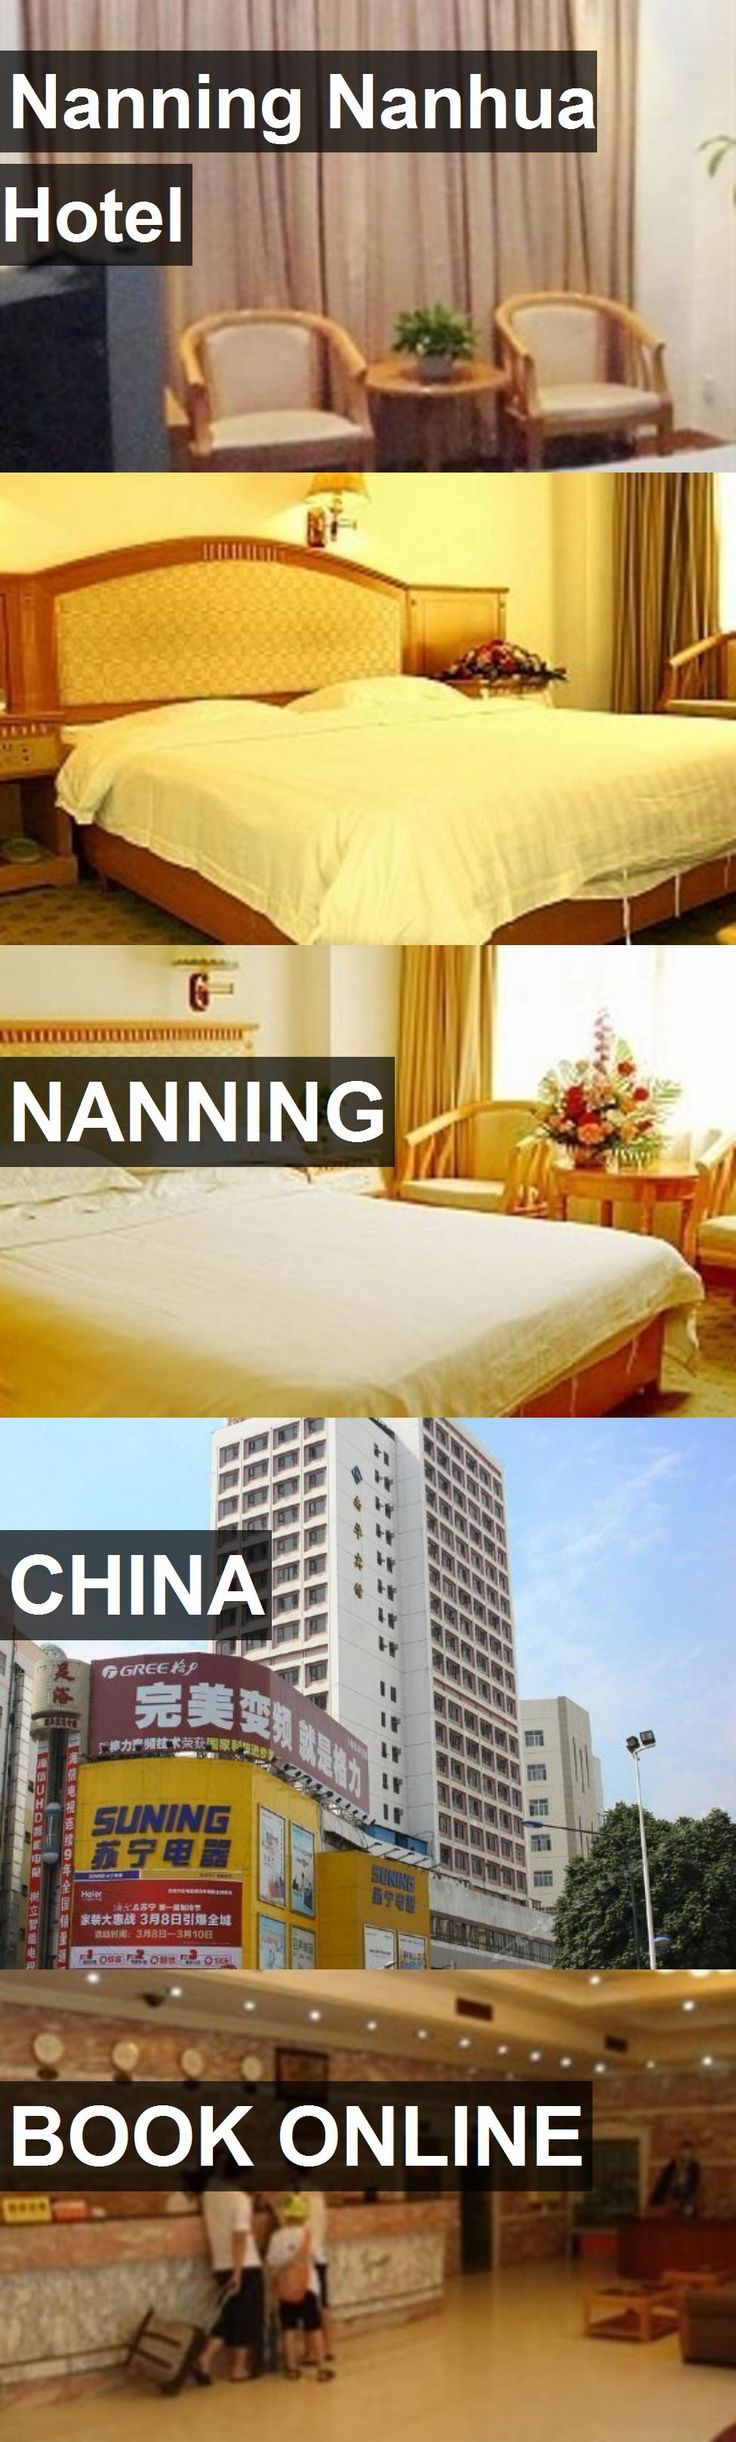 Nanning Nanhua Hotel in Nanning, China. For more information, photos, reviews and best prices please follow the link. #China #Nanning #travel #vacation #hotel